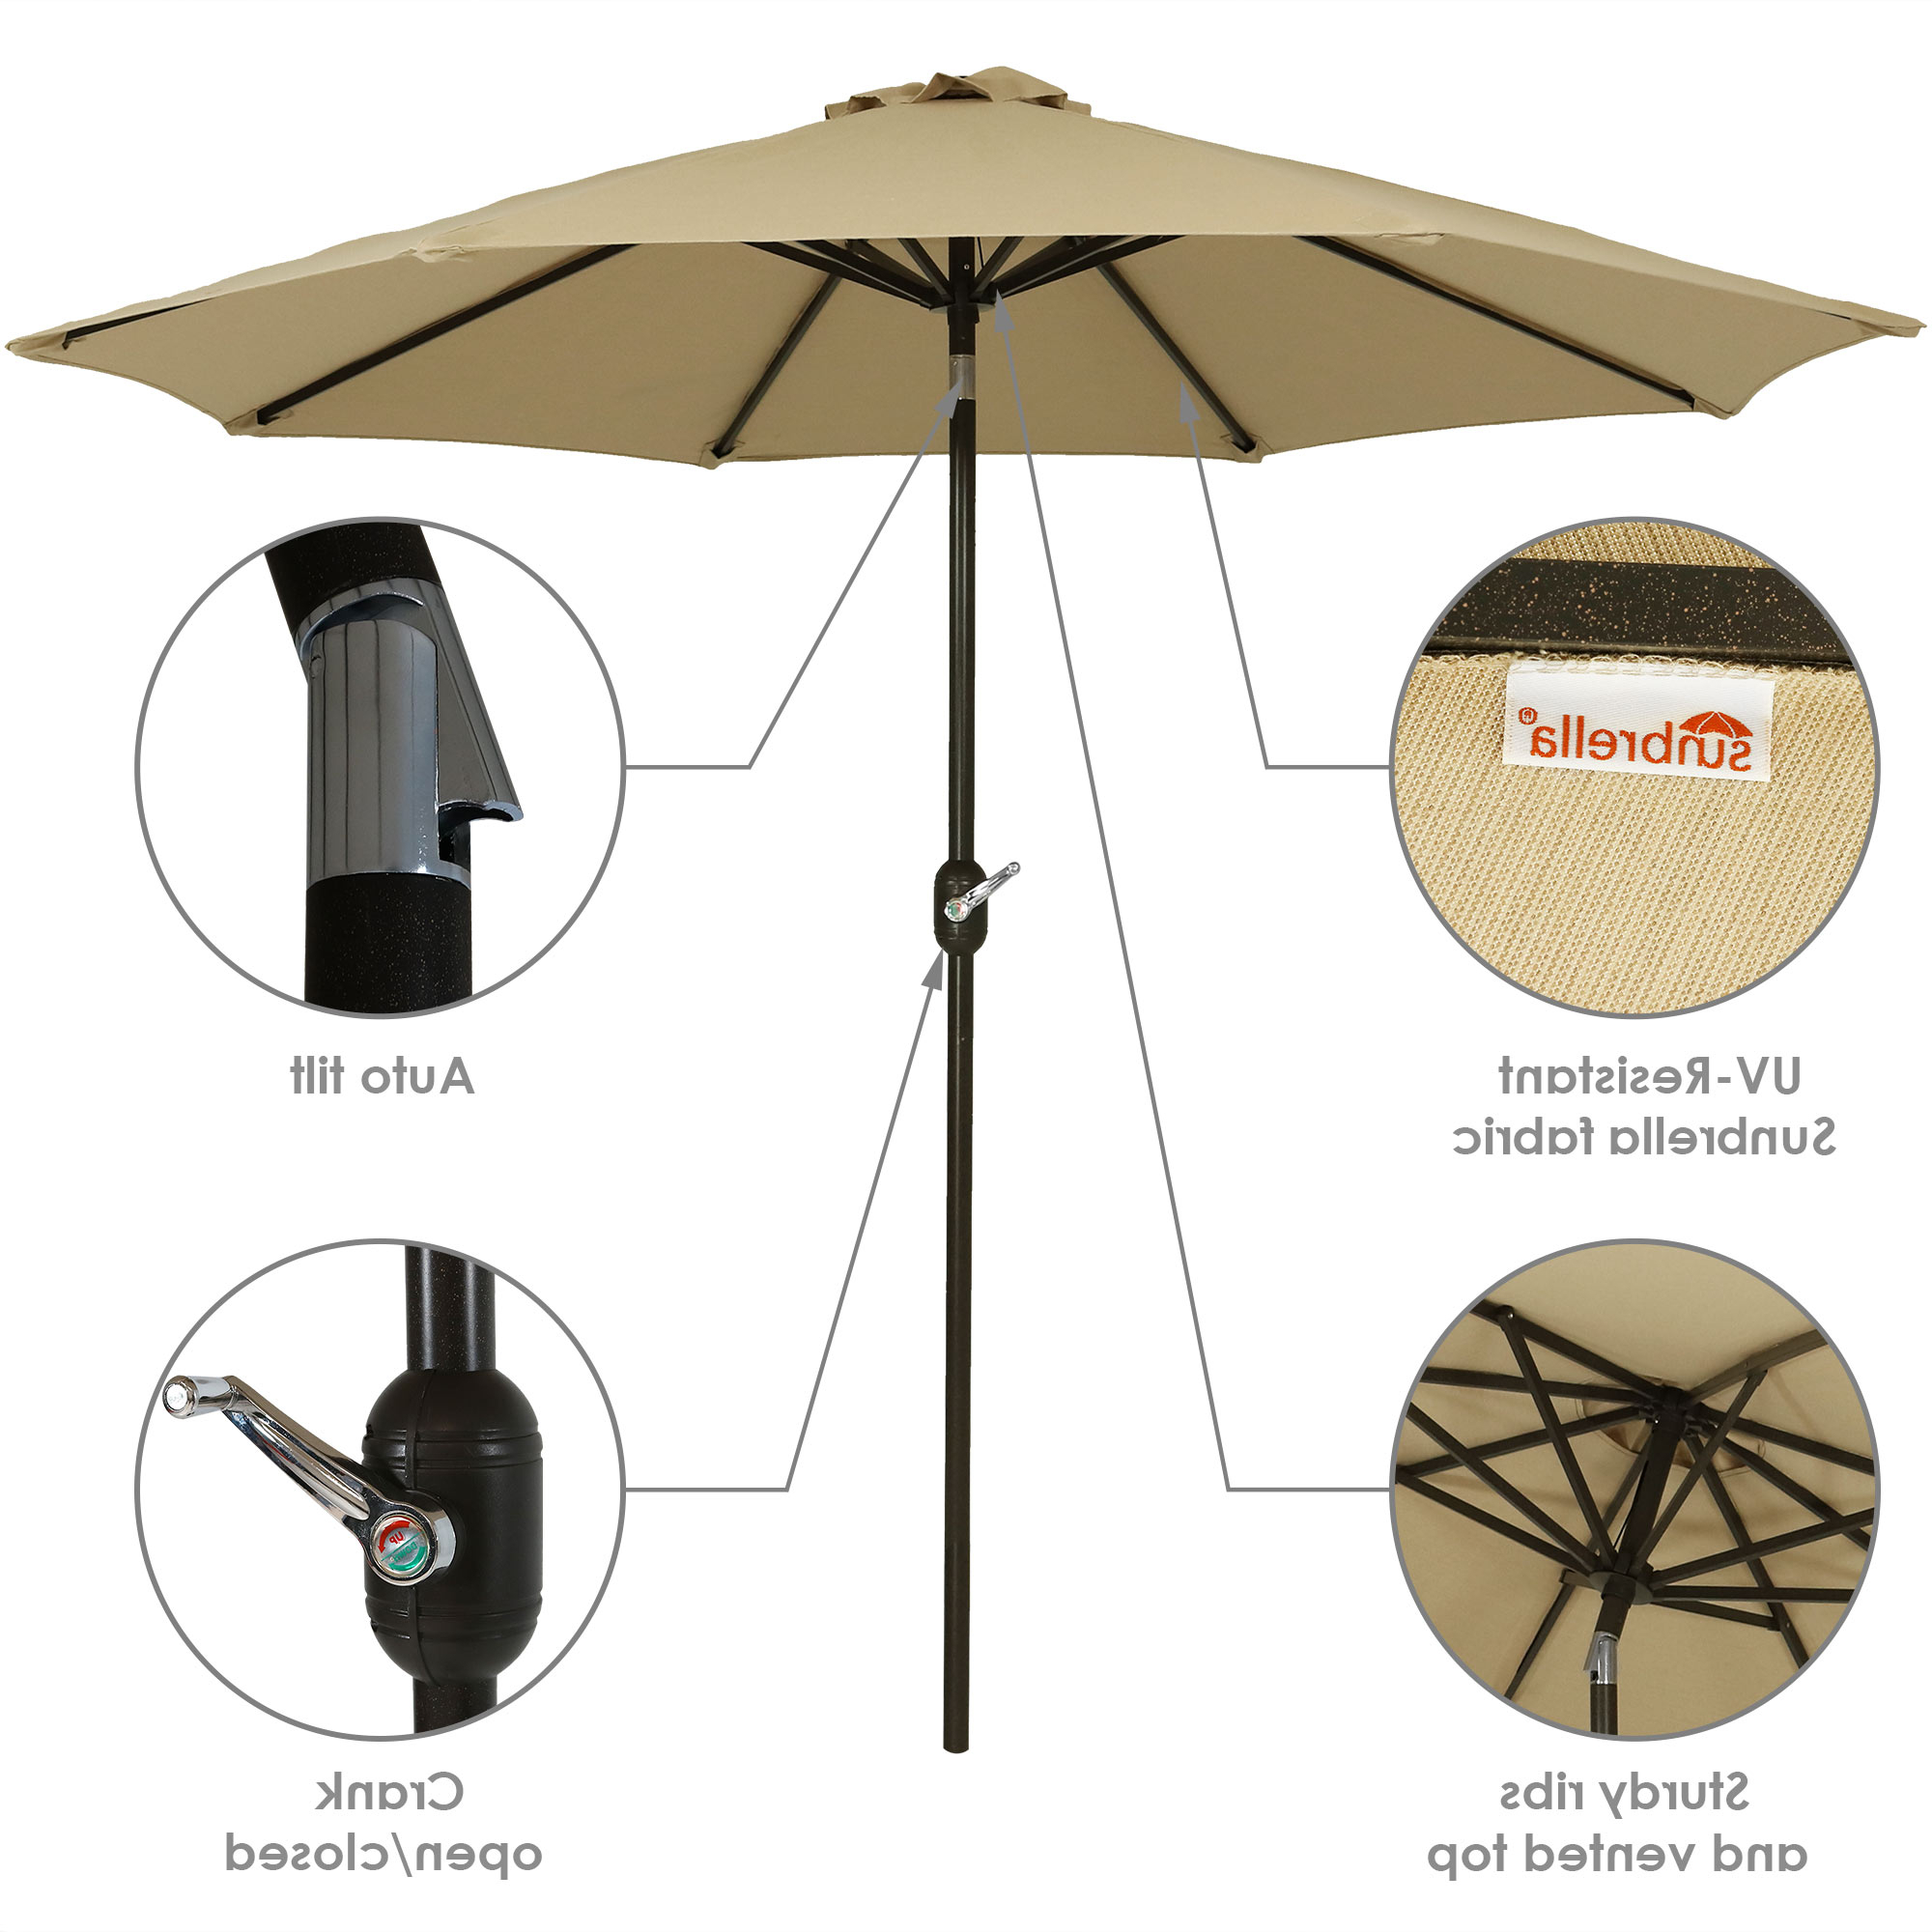 Newest Julian Market Sunbrella Umbrellas Regarding Sunnydaze Sunbrella Patio Umbrella With Auto Tilt And Crank, 9 Foot Outdoor  Market Umbrella, Rust Resistant Aluminum, Sunbrella Beige (View 14 of 20)